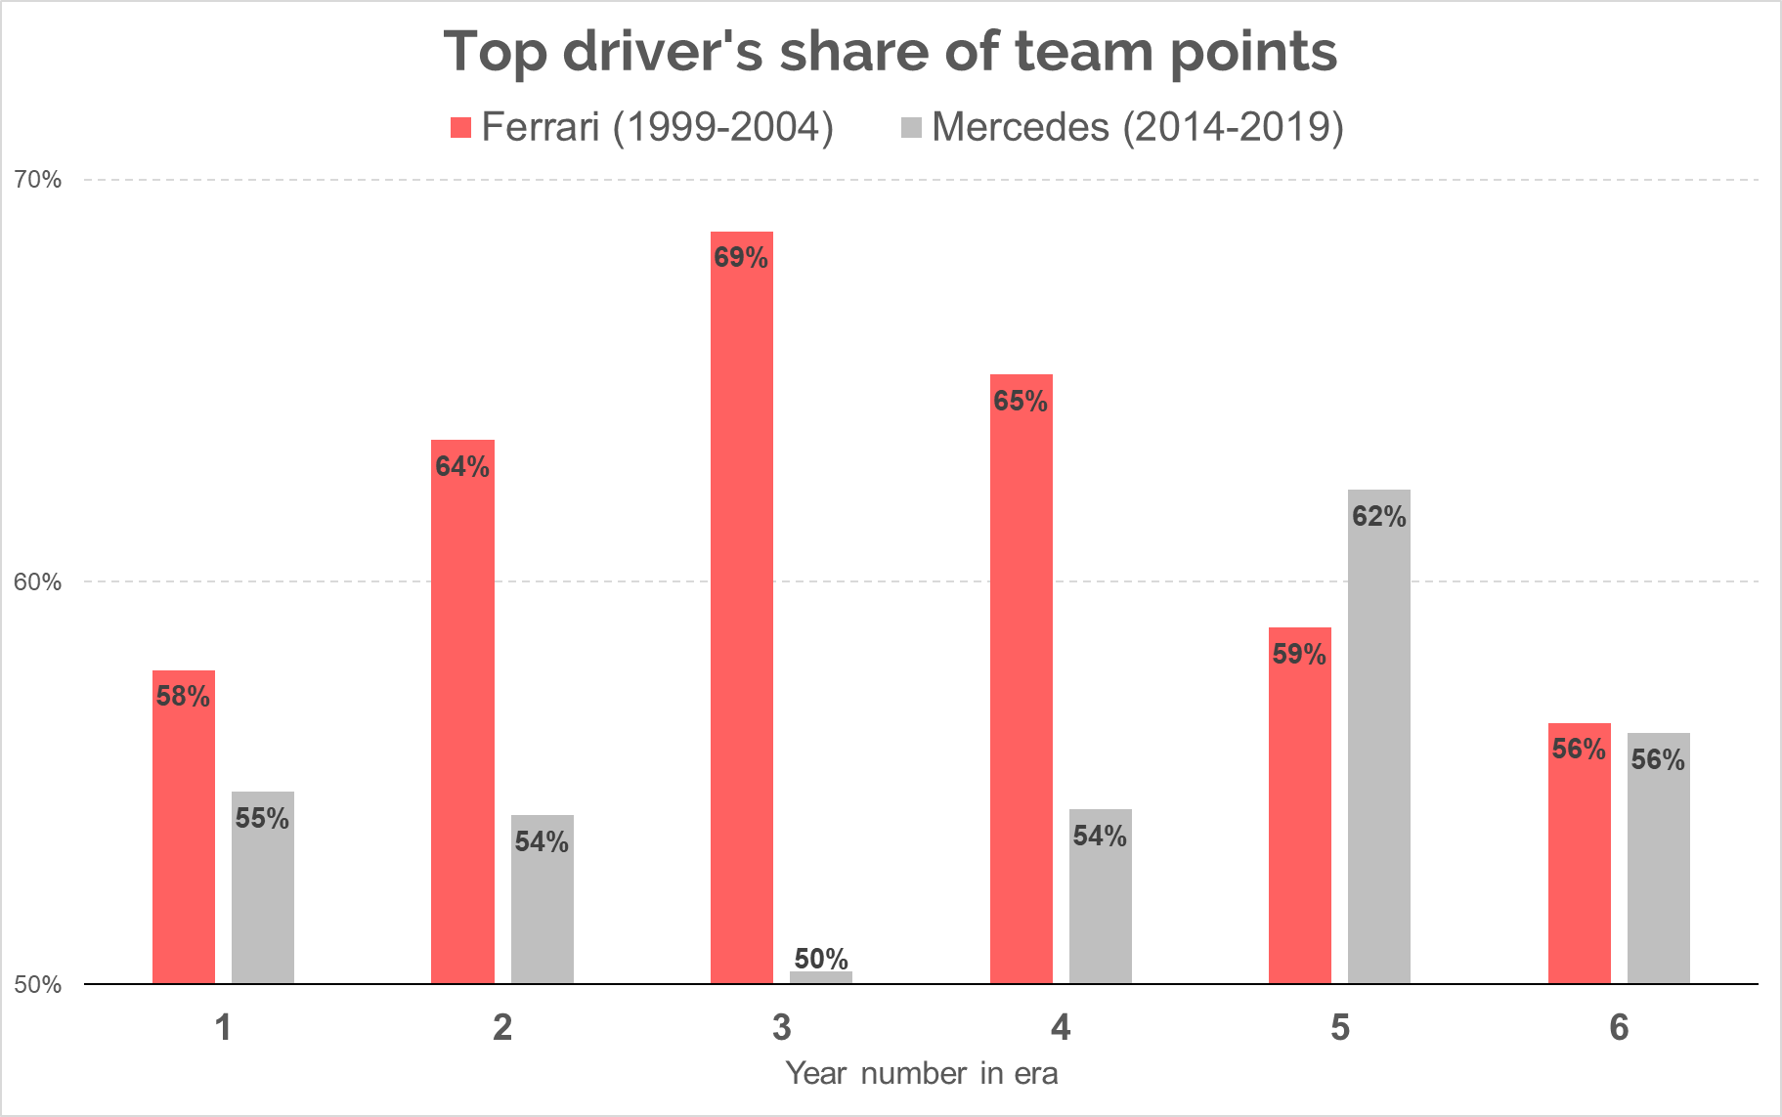 Graph showing the share of points taken by the top driver at Ferrari and Mercedes for each year of the teams' respective eras of superiority in Formula One